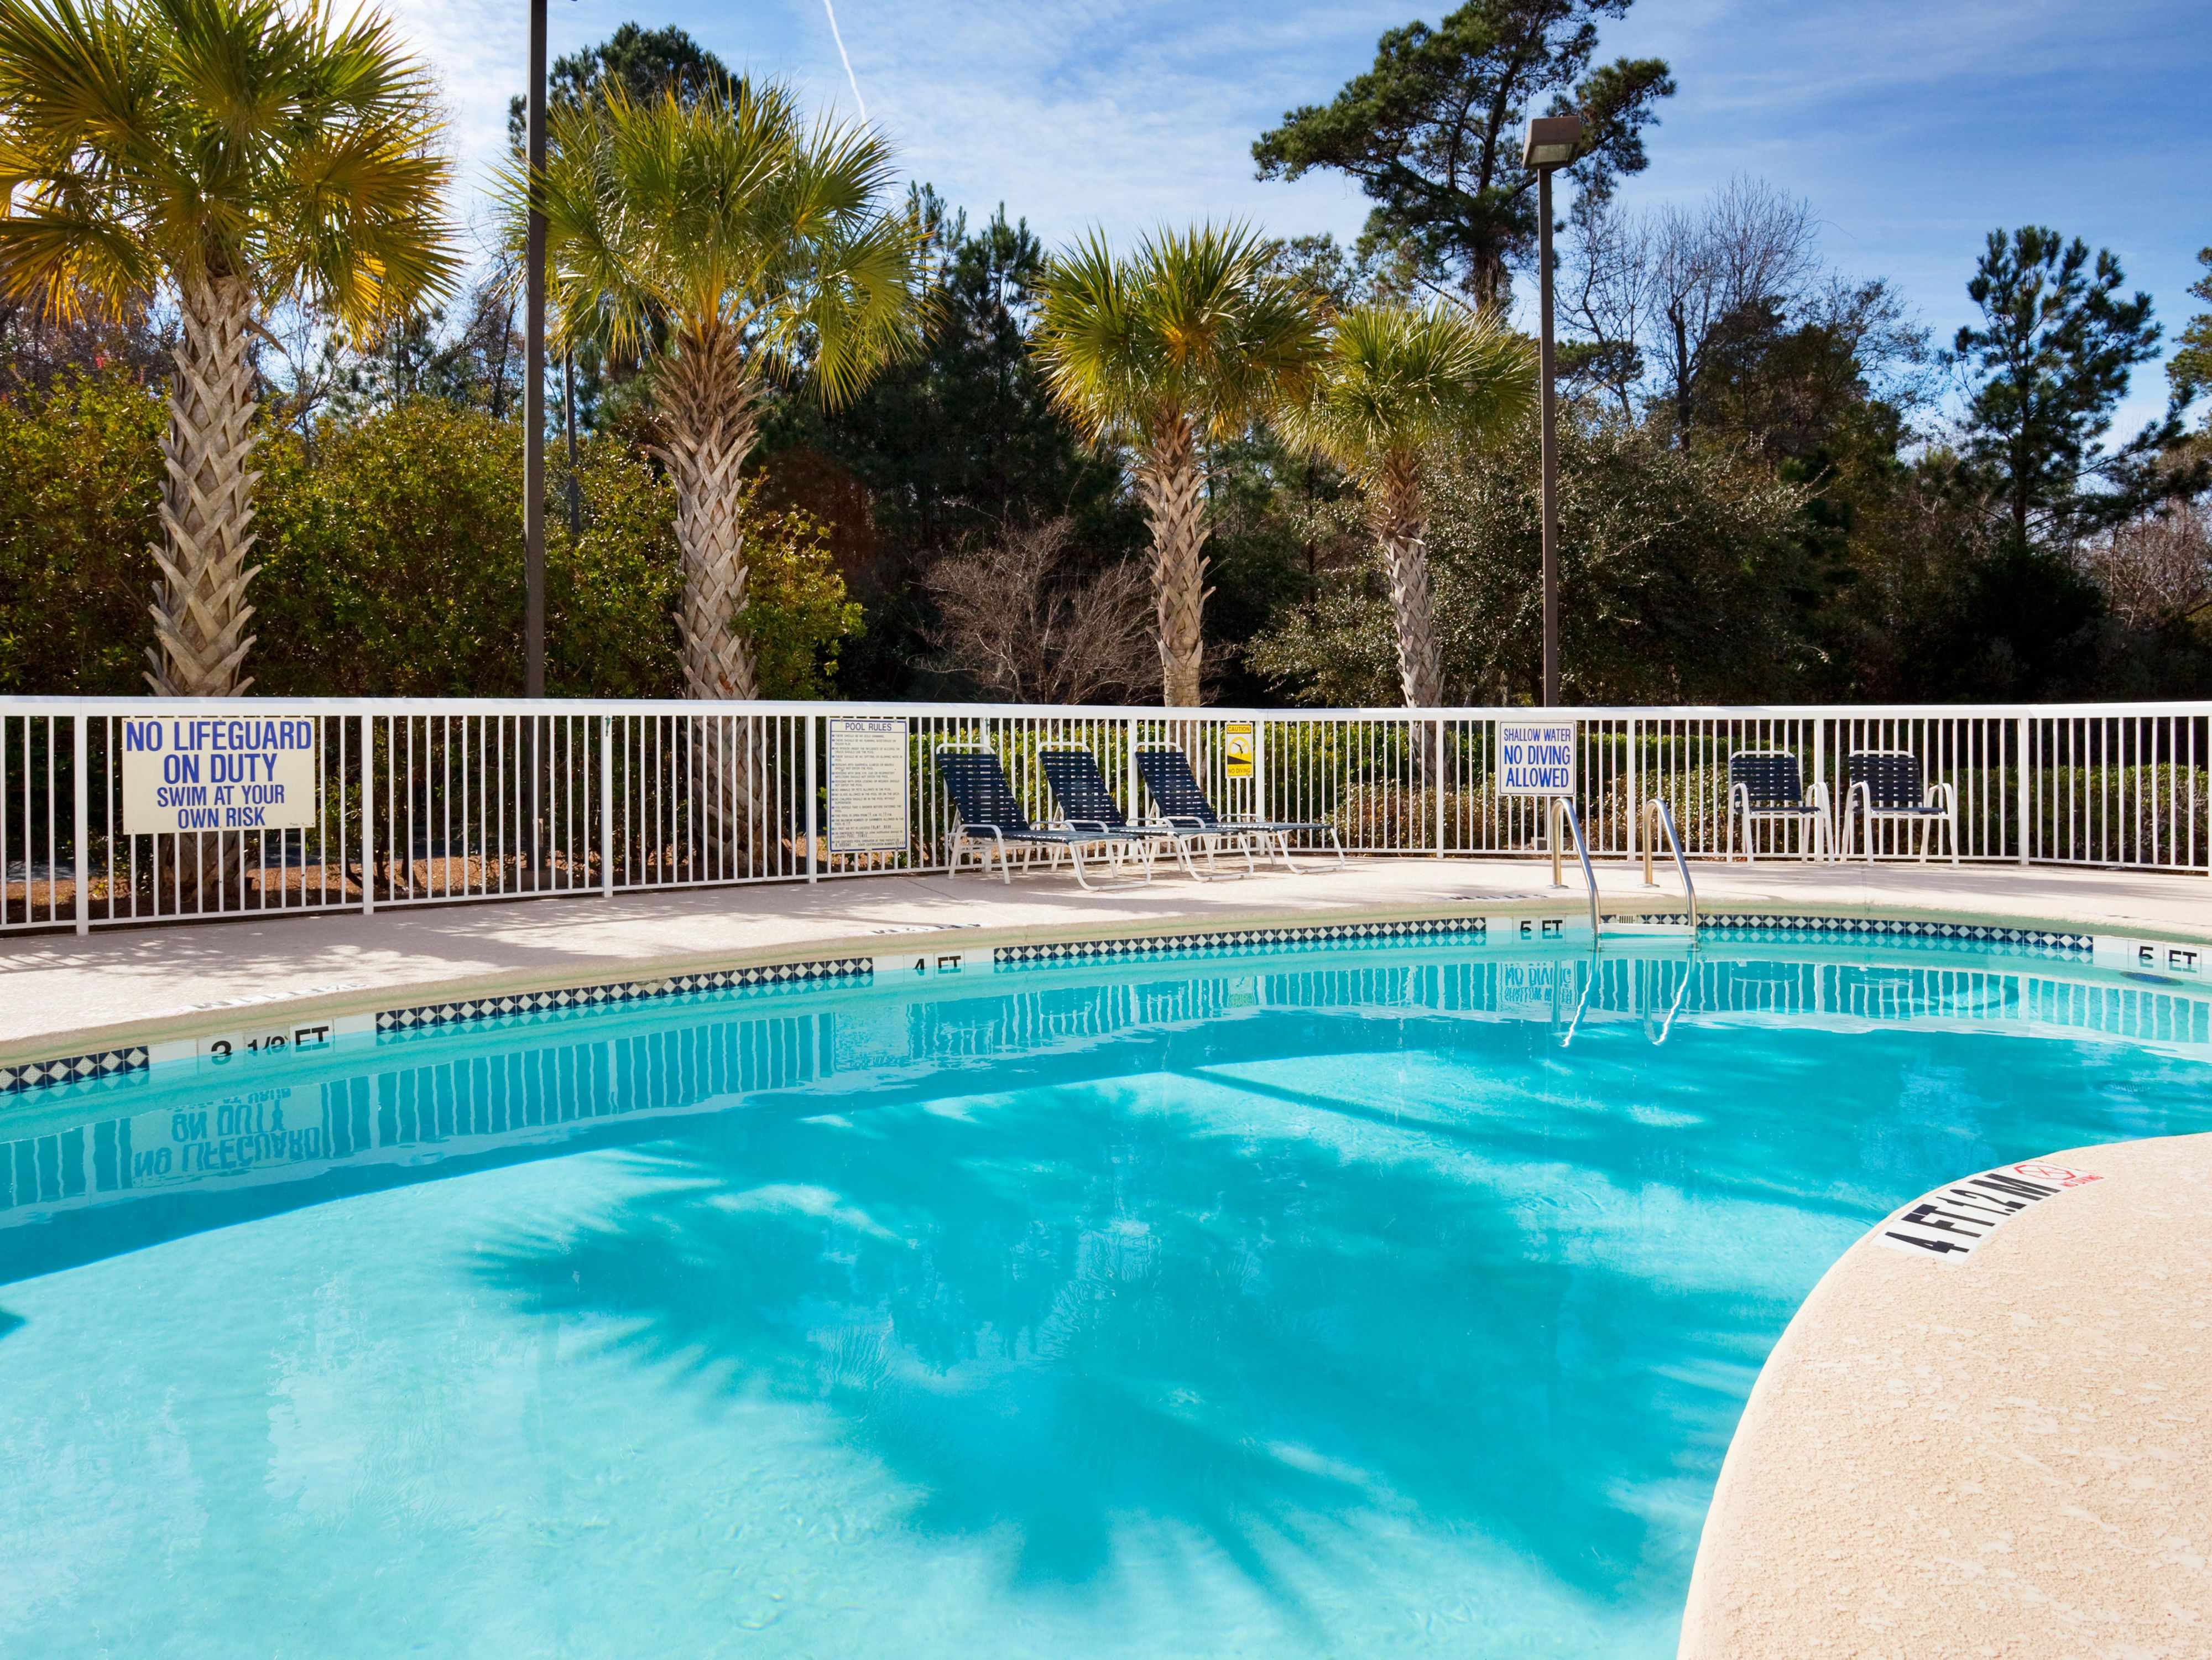 Holiday Inn Express Charleston Secluded Outdoor Swimming Pool